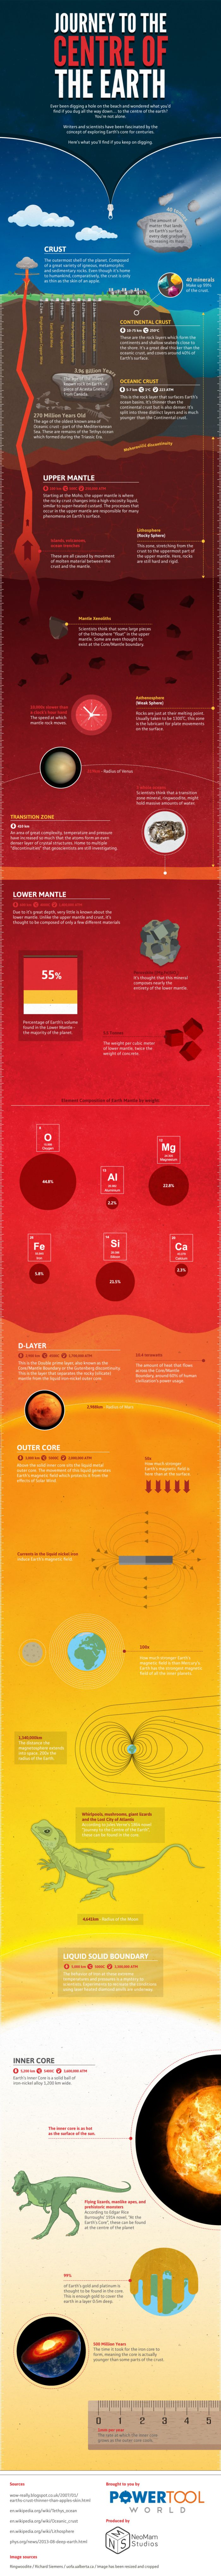 What's Inside The Center Of The Earth (infographic)